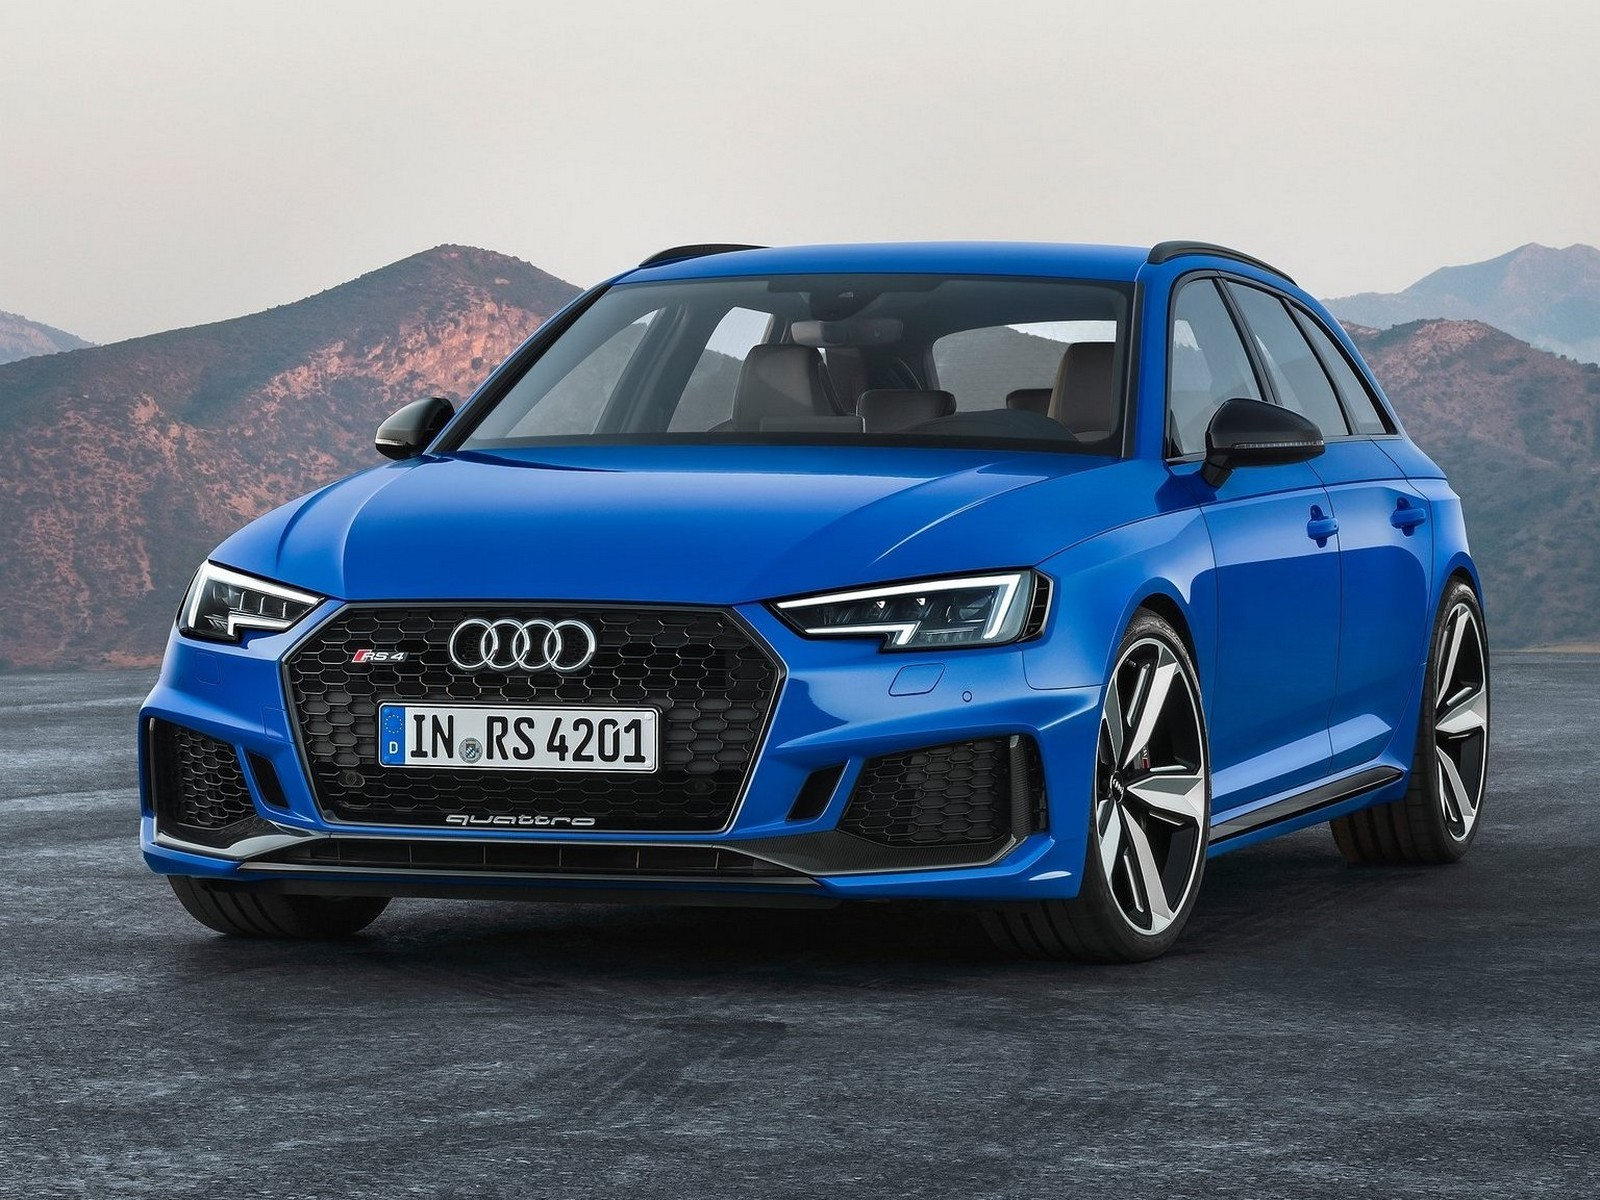 audi rs4 avant 2018 un moteur double turbo tfsi v6 de 2 9 litres. Black Bedroom Furniture Sets. Home Design Ideas